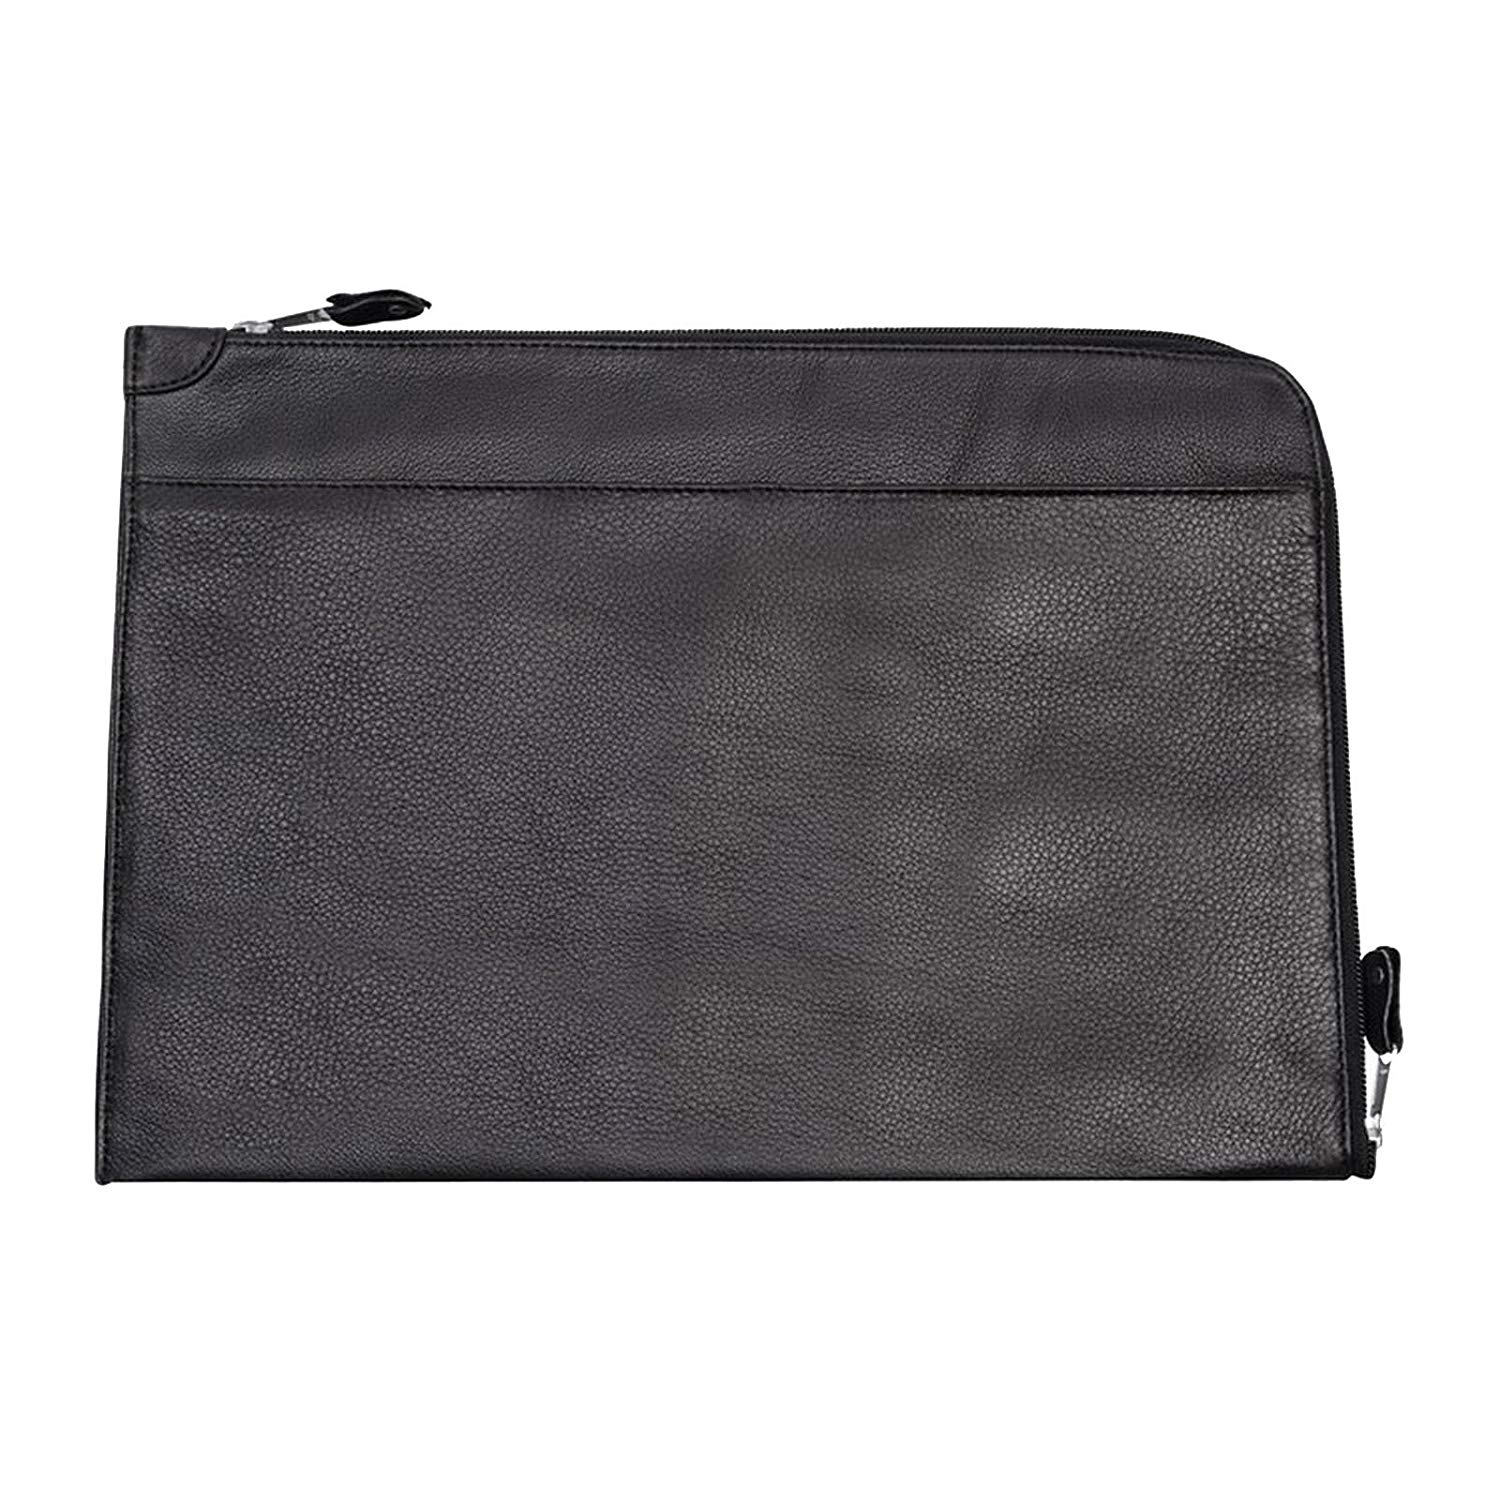 Canyon Outback Leather Canyon City Zip-around Leather Portfolio